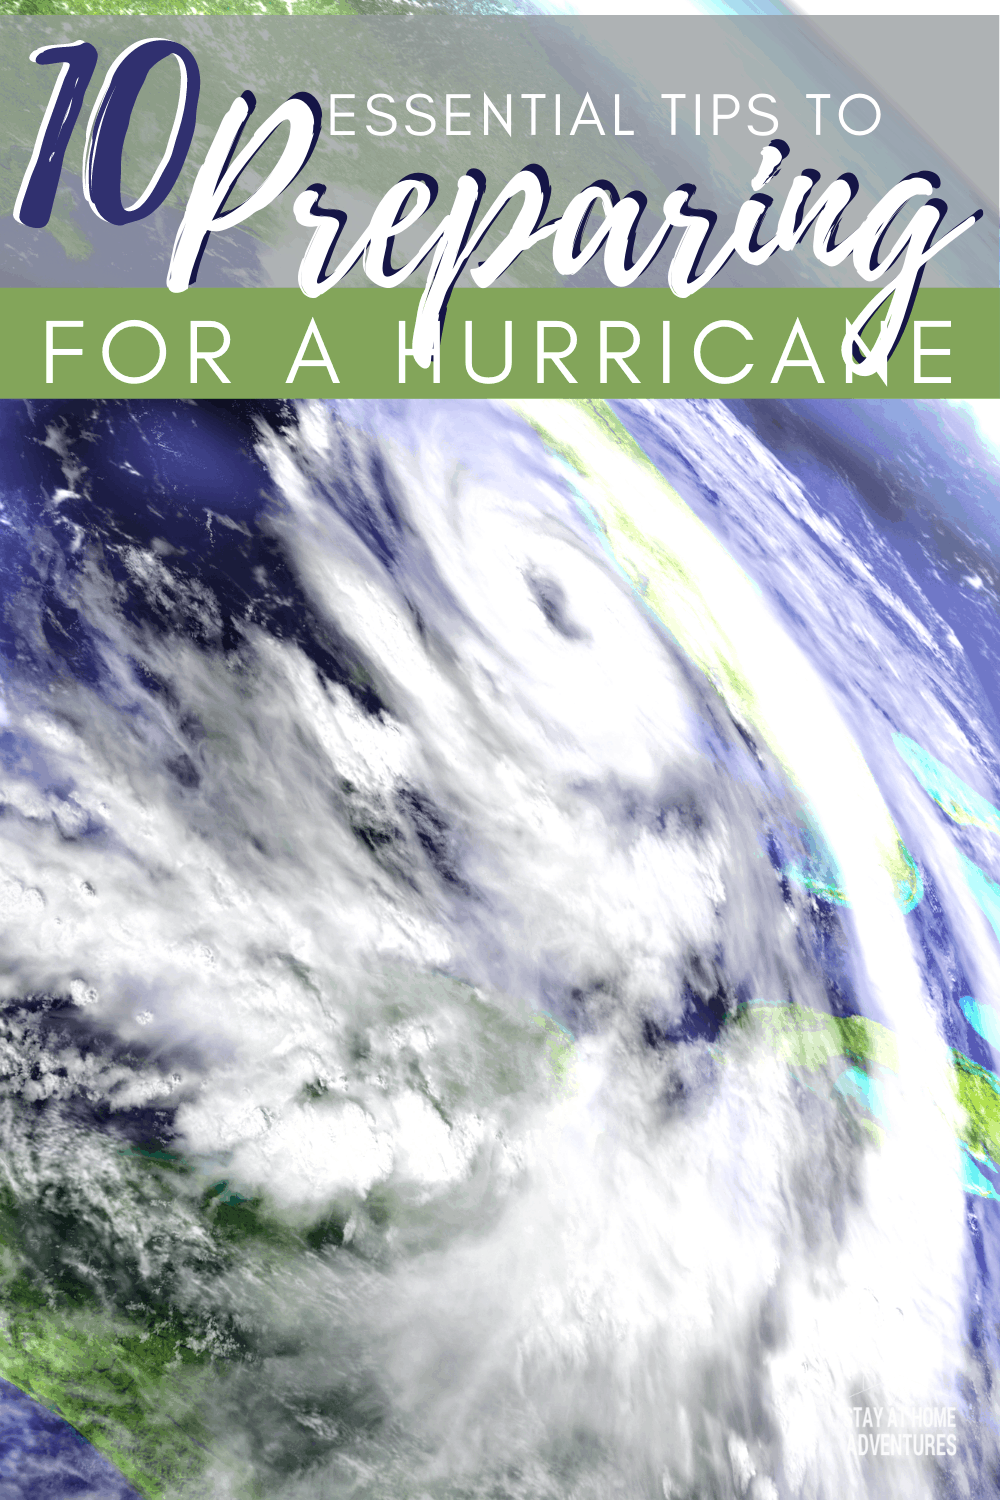 Start early and learn how to prepare for a hurricane on a budget. With these tips to building a budget-friendly preparedness kit, you won't break the bank. via @mystayathome